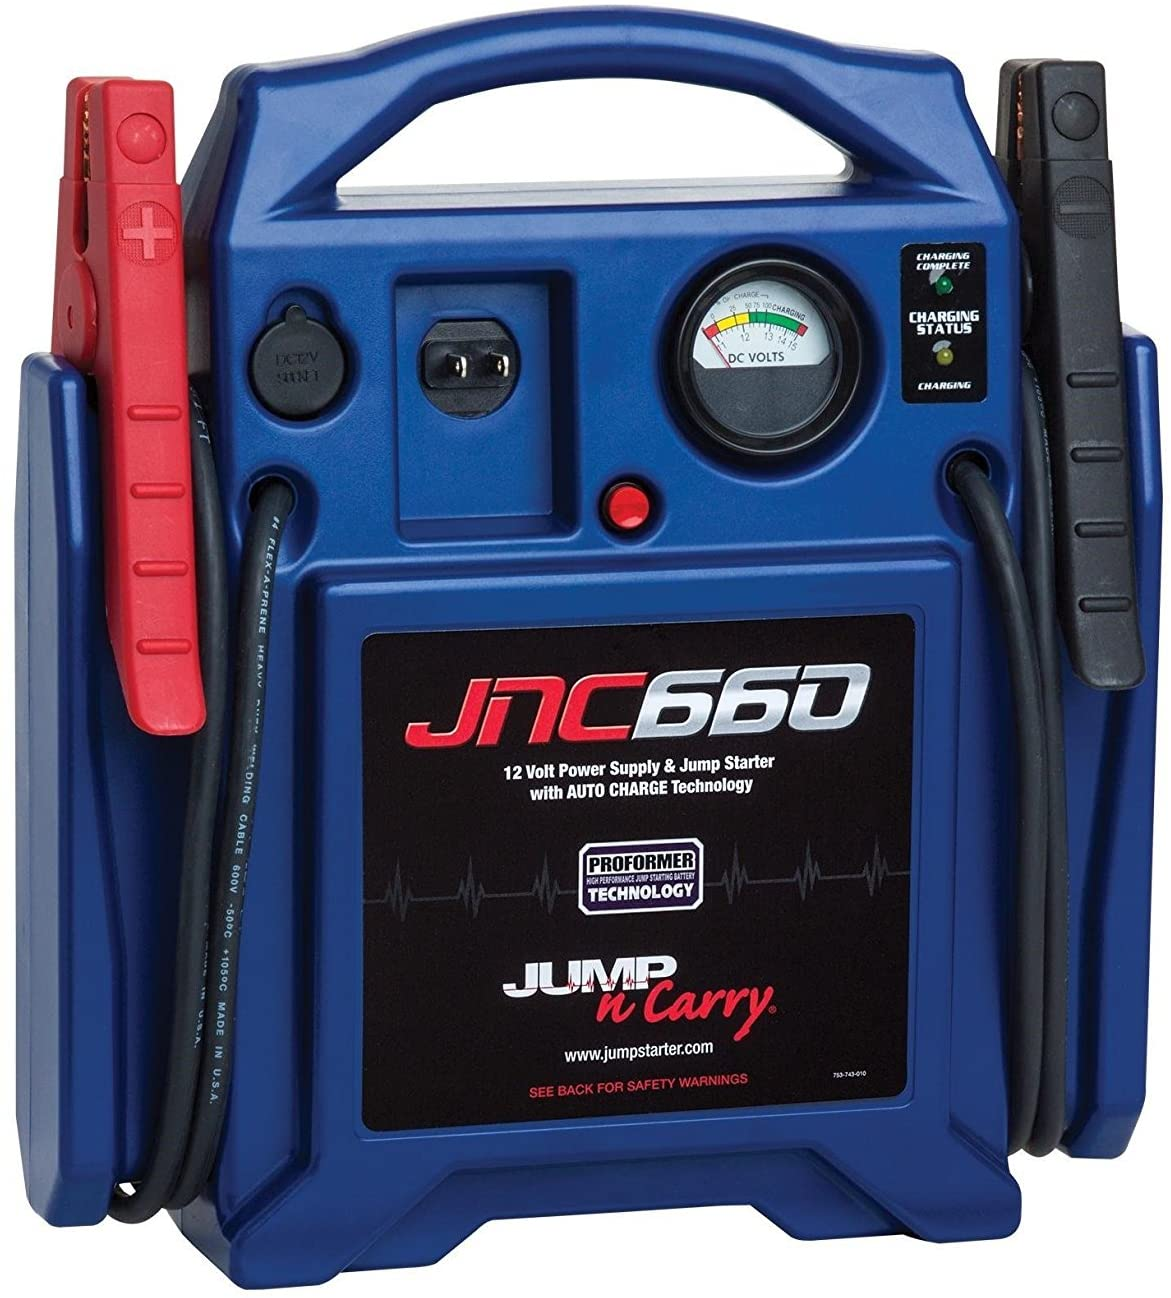 Clore Automotive Jump-N-Carry JNC660 1700 Peak car Jump Starter